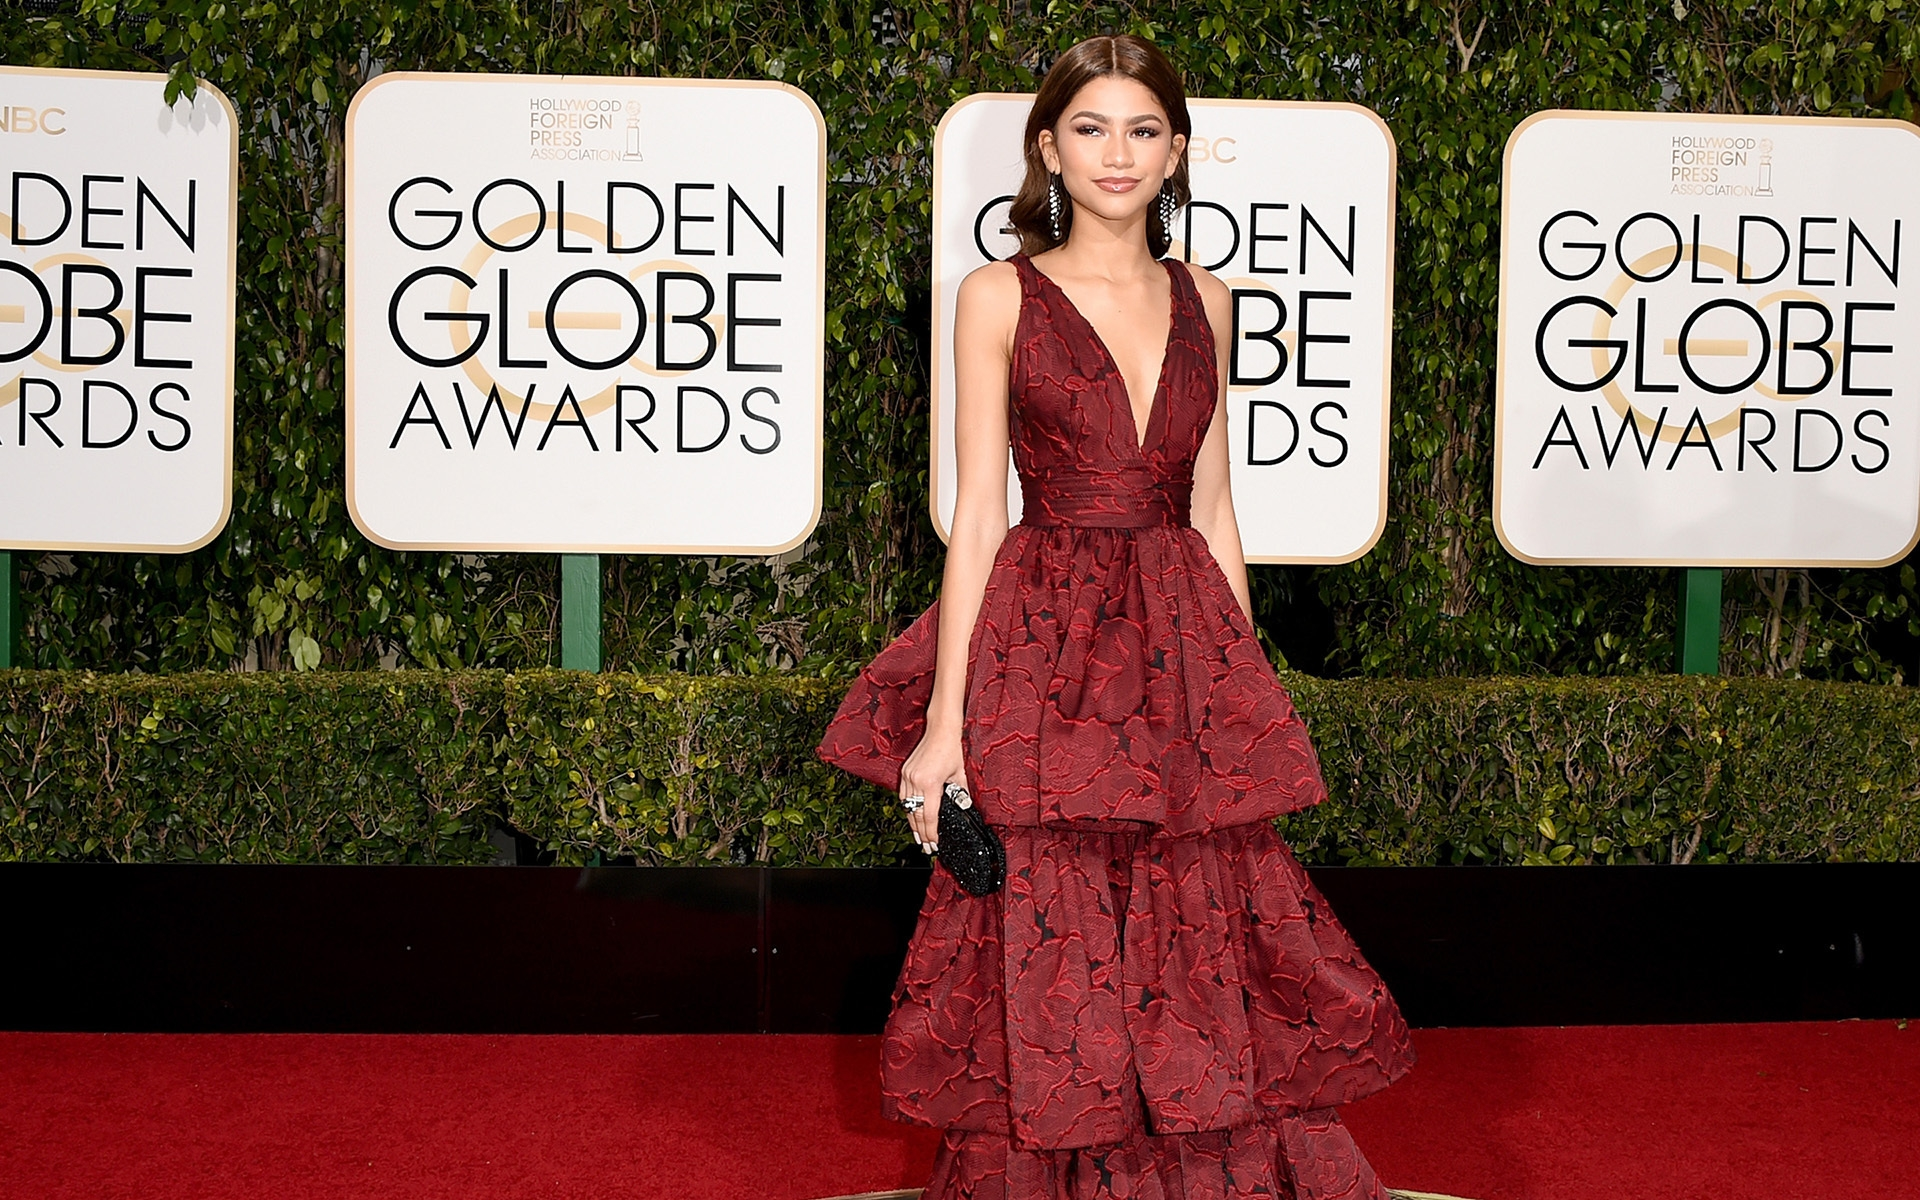 Zendaya Golden Globe Awards for 1920 x 1200 widescreen resolution